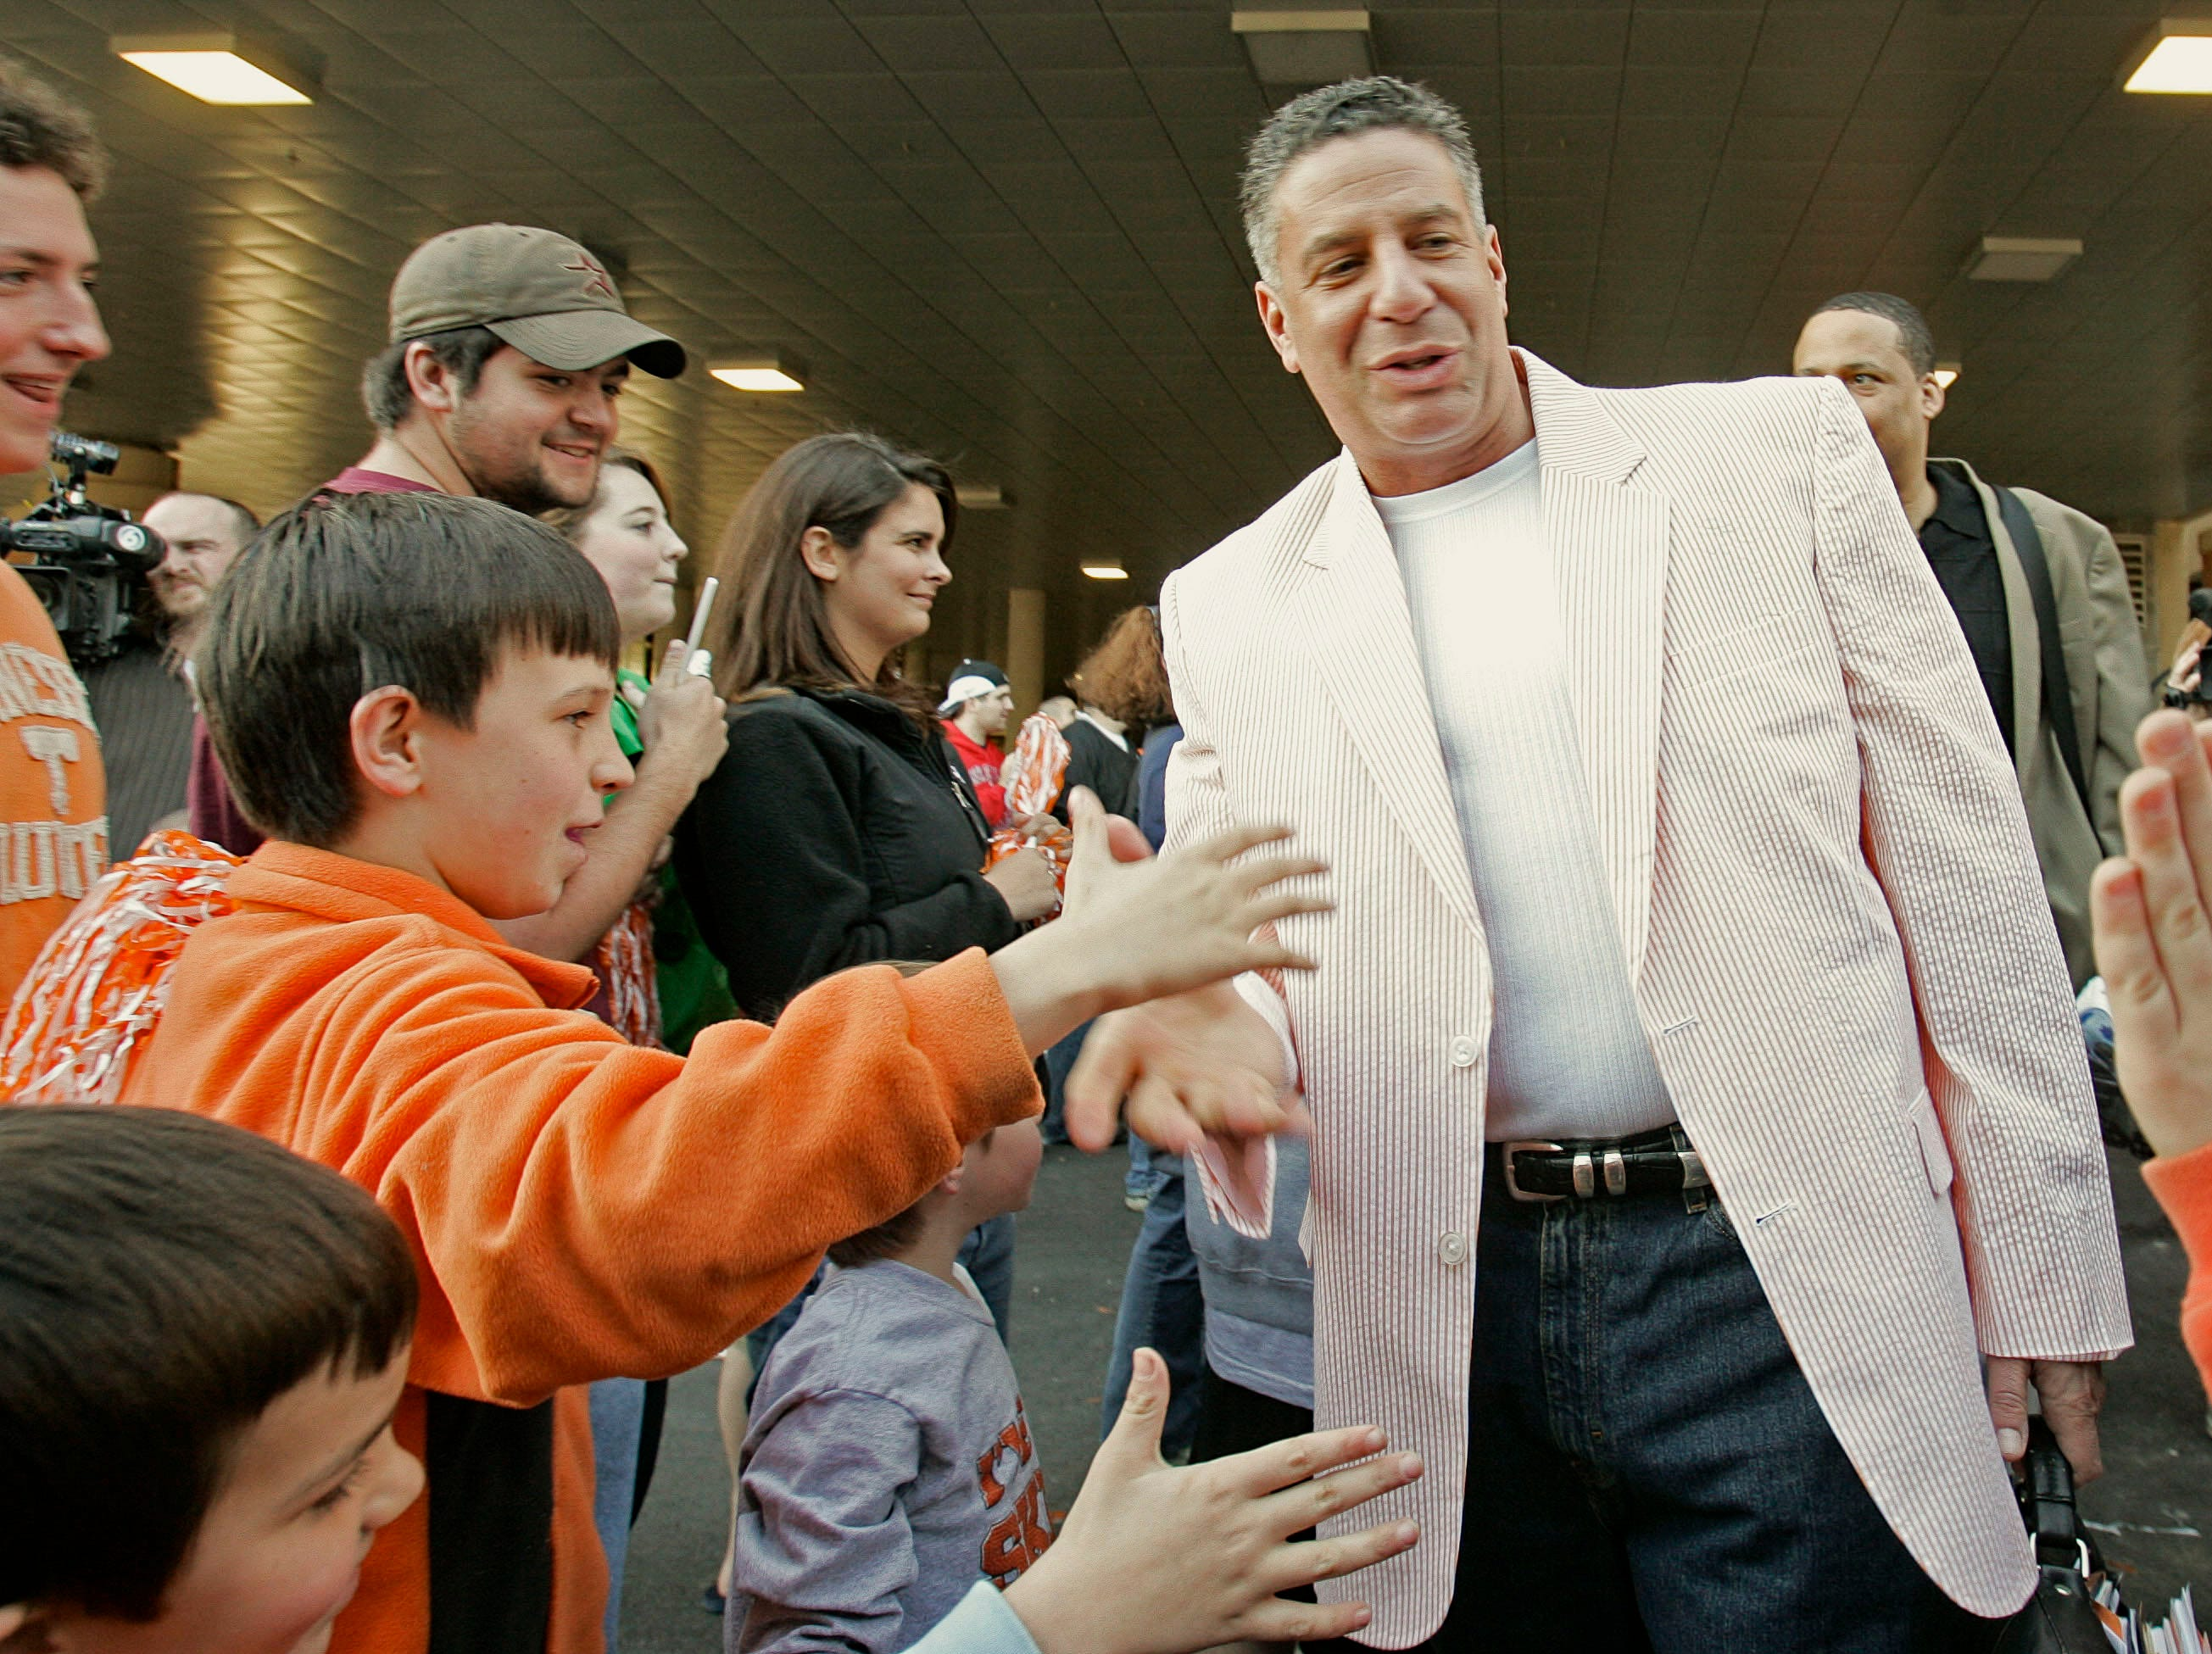 Tennessee coach Bruce Pearl is greeted by fans as the team leaves for Charlotte Tuesday, March 25, 2008 in Knoxville, Tenn. The Vols will play Louisville on Thursday.